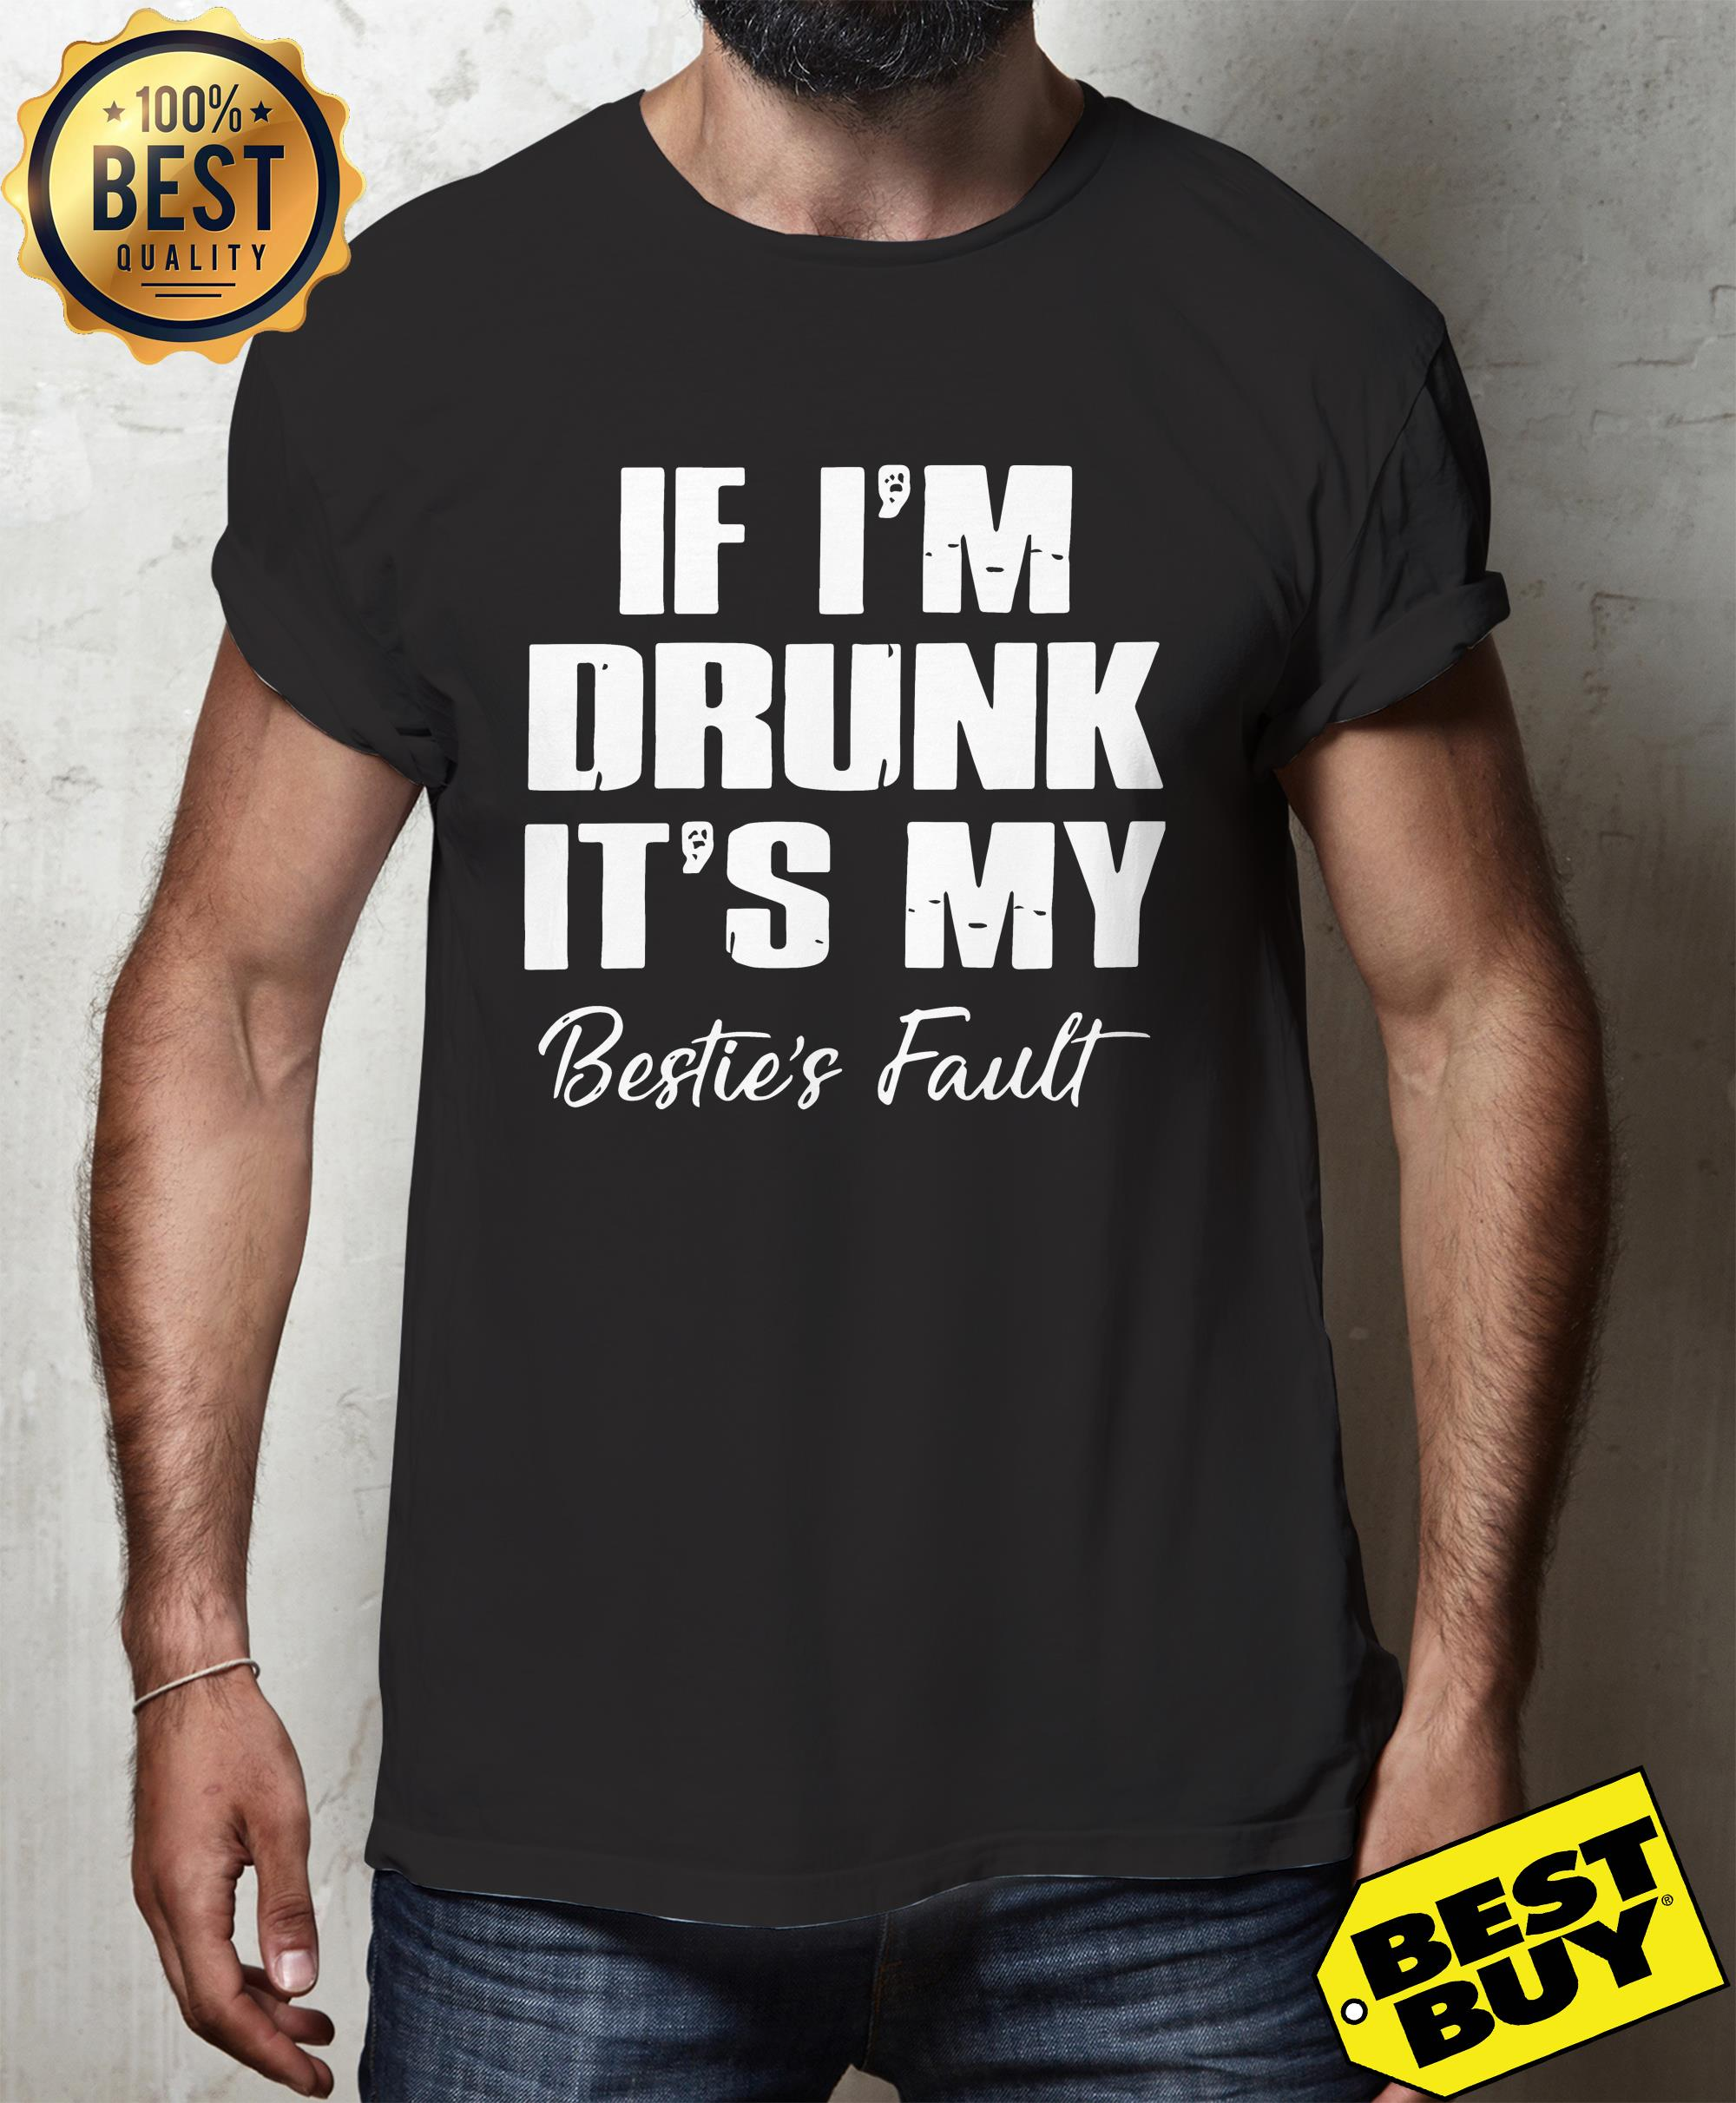 If I'm drunk it's my bestie's fault hoodie